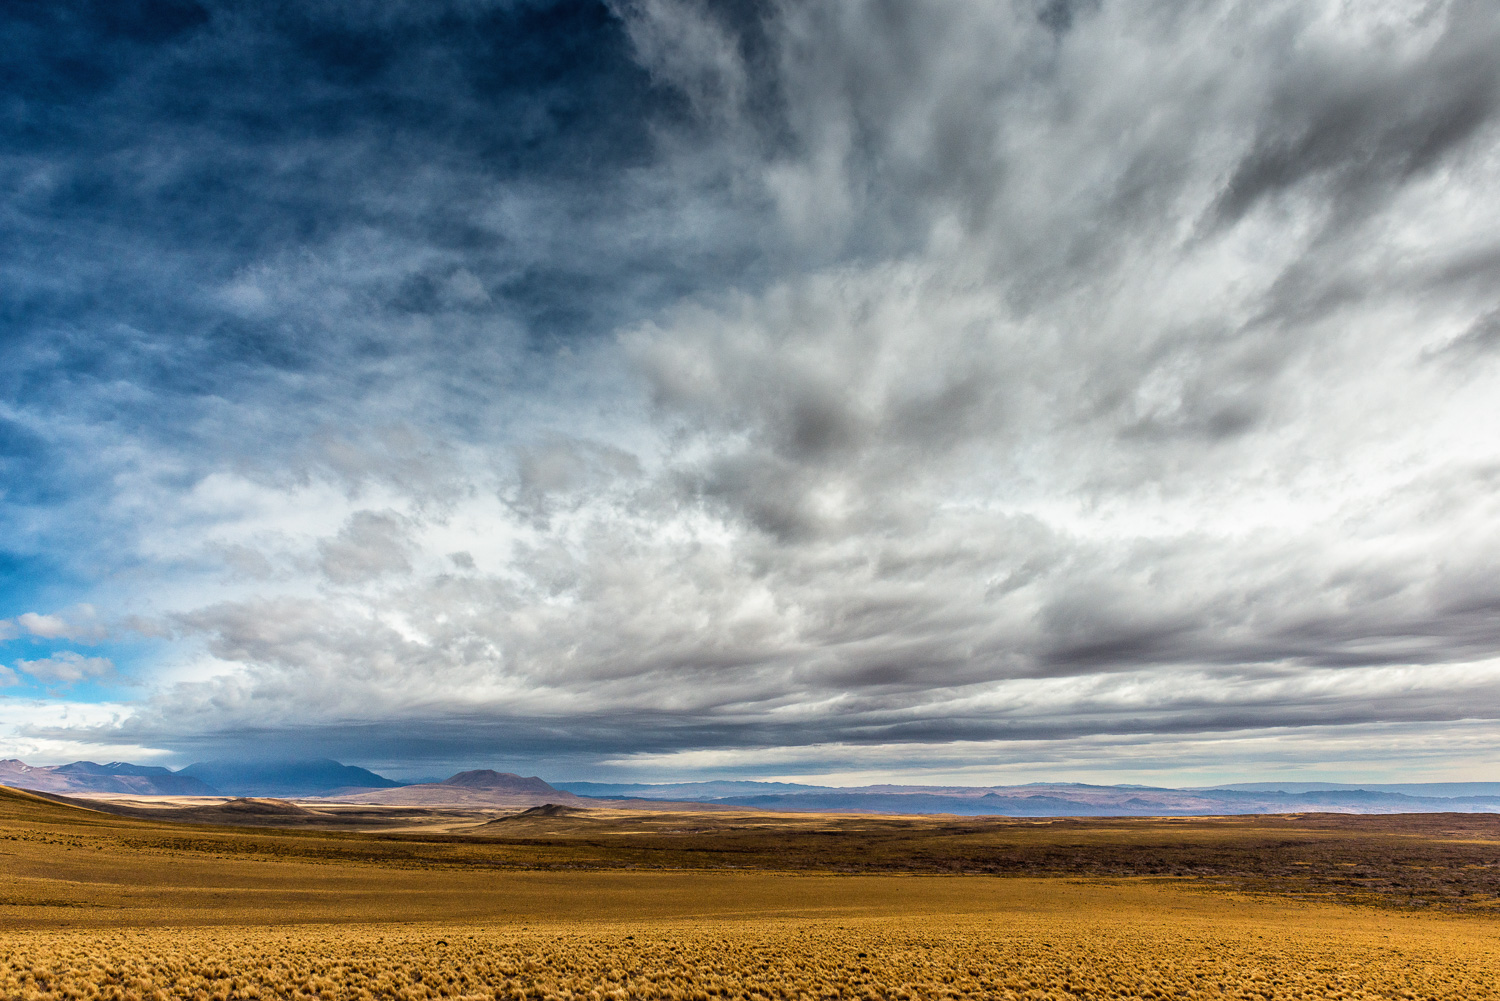 Clouds, Altiplano, Socaire, Chile